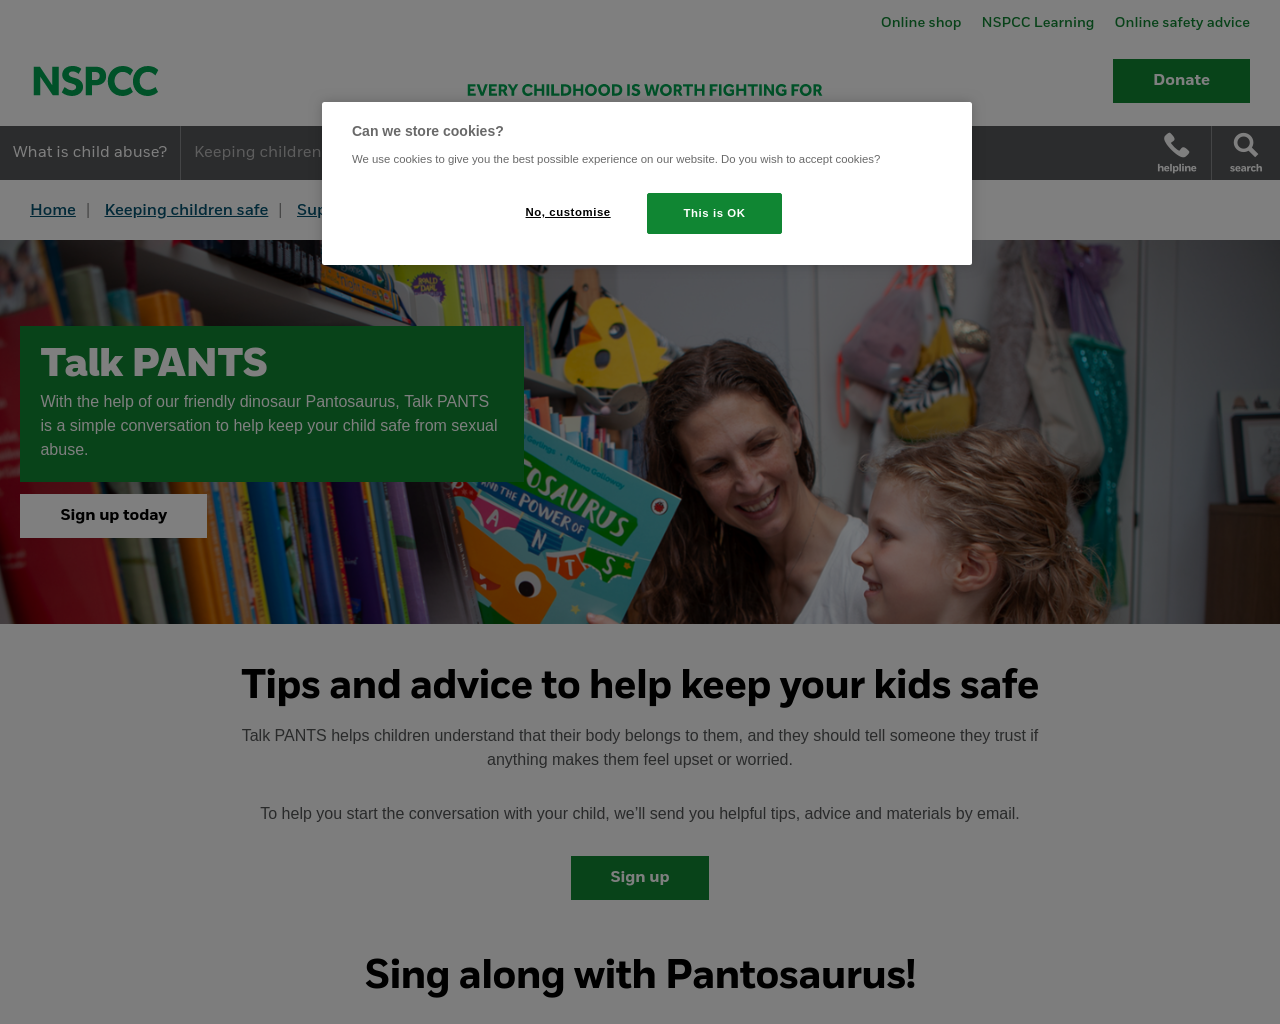 NSPCC Resources